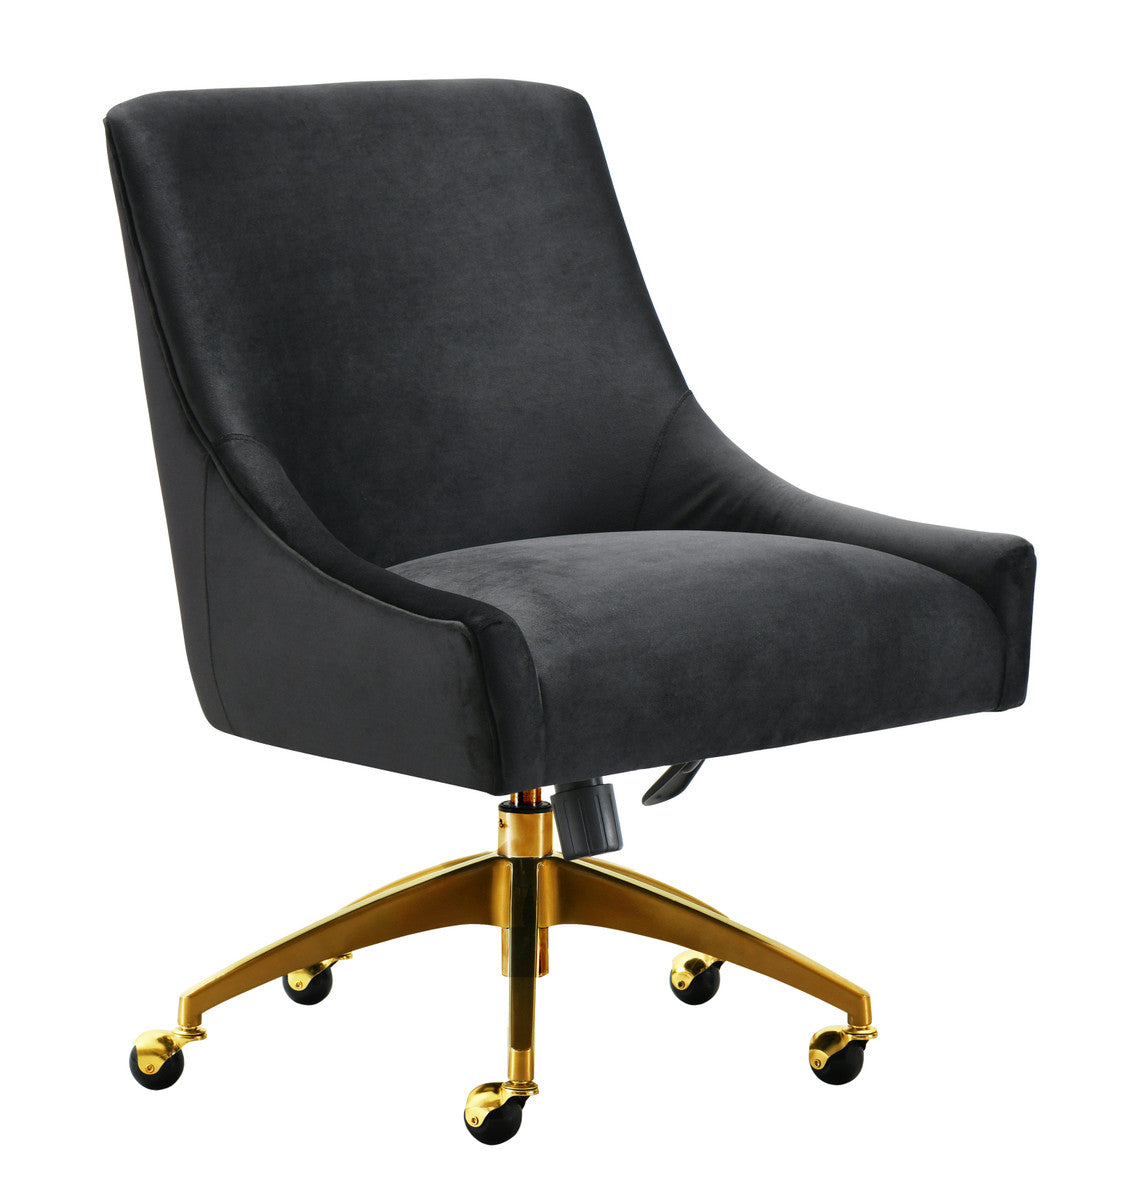 Stewart Velvet Office Chair near desk